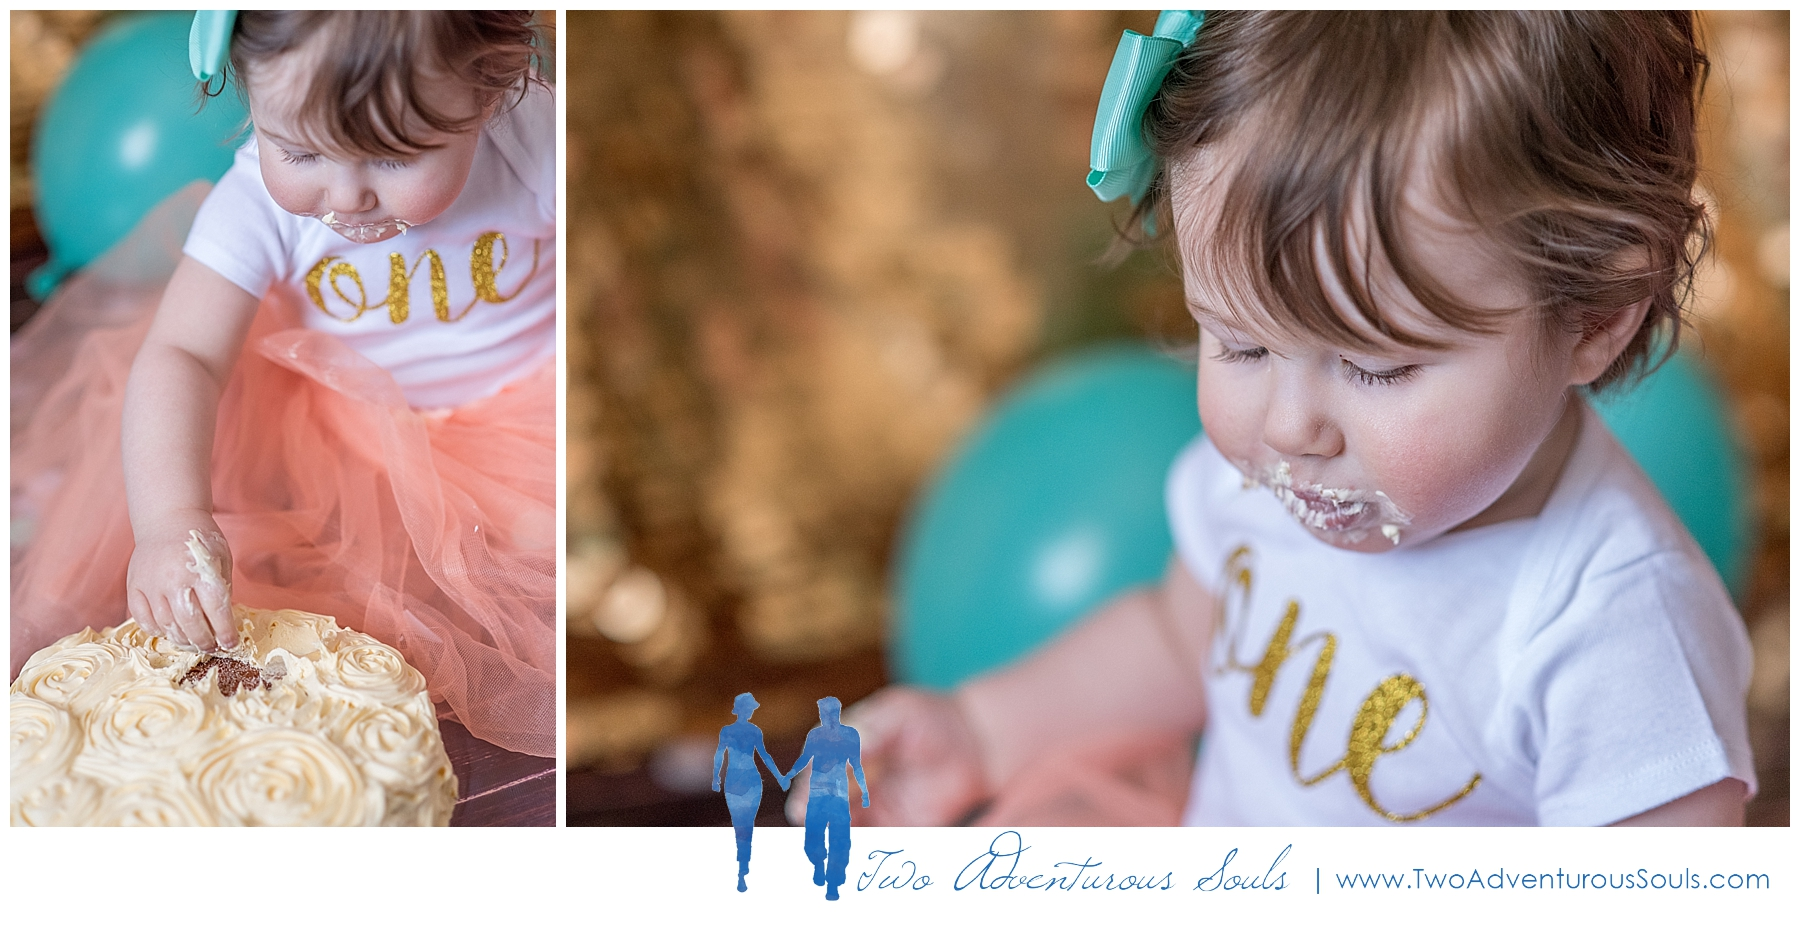 Maine Family Photographer, Two Adventurous Souls - Gold and Teal Cake Smash Session - 3